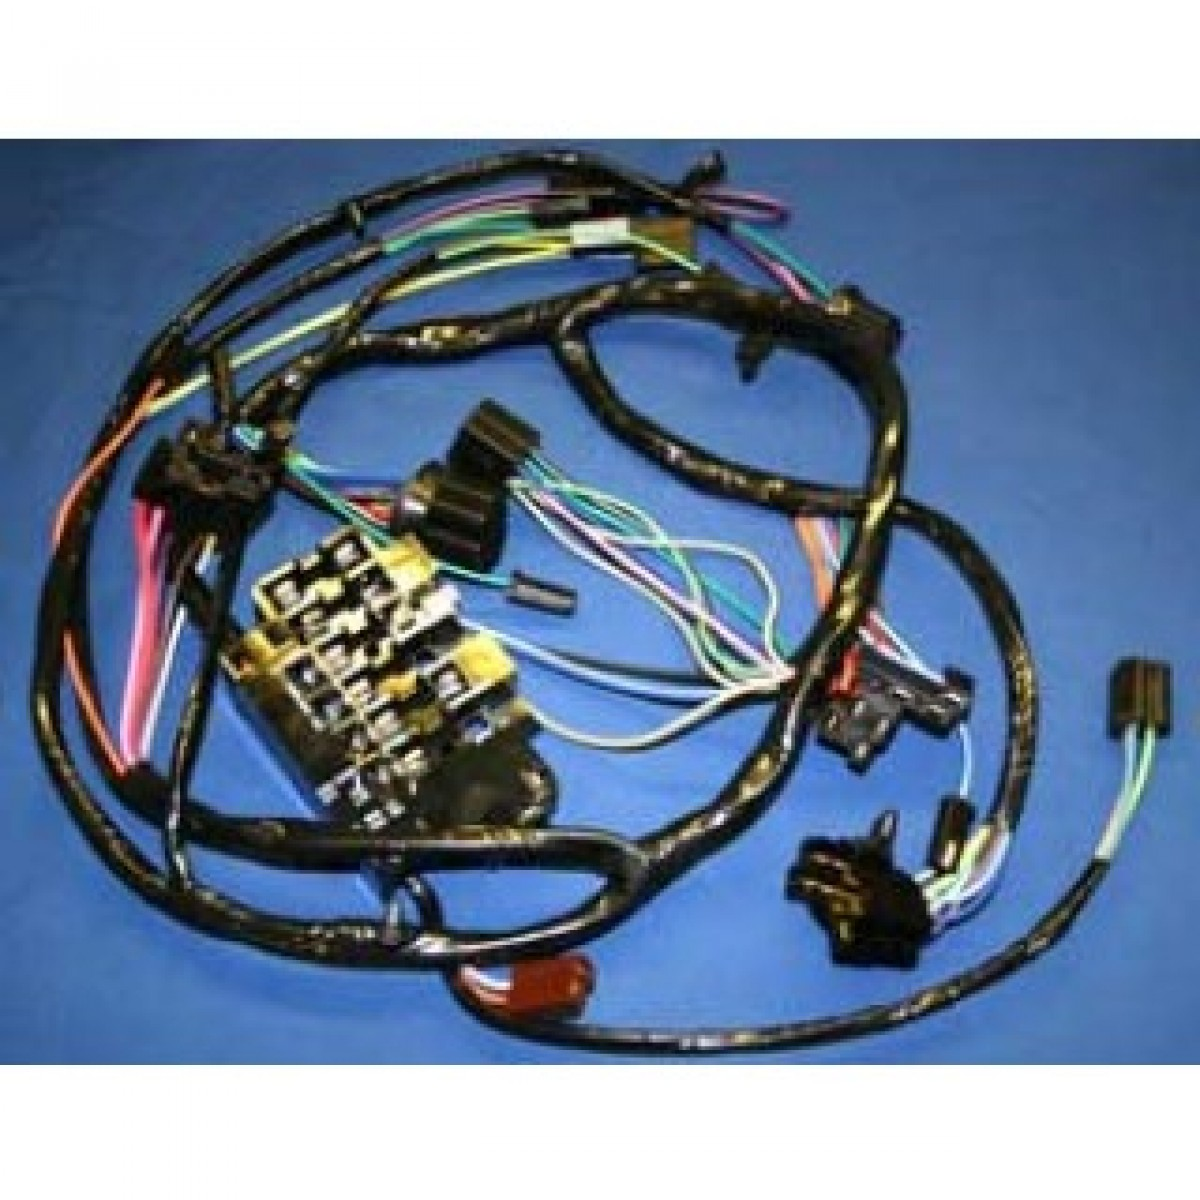 1964 chevy truck color wiring diagram 2013 passat tdi fuse the install doctor radio wire harness and colors ford